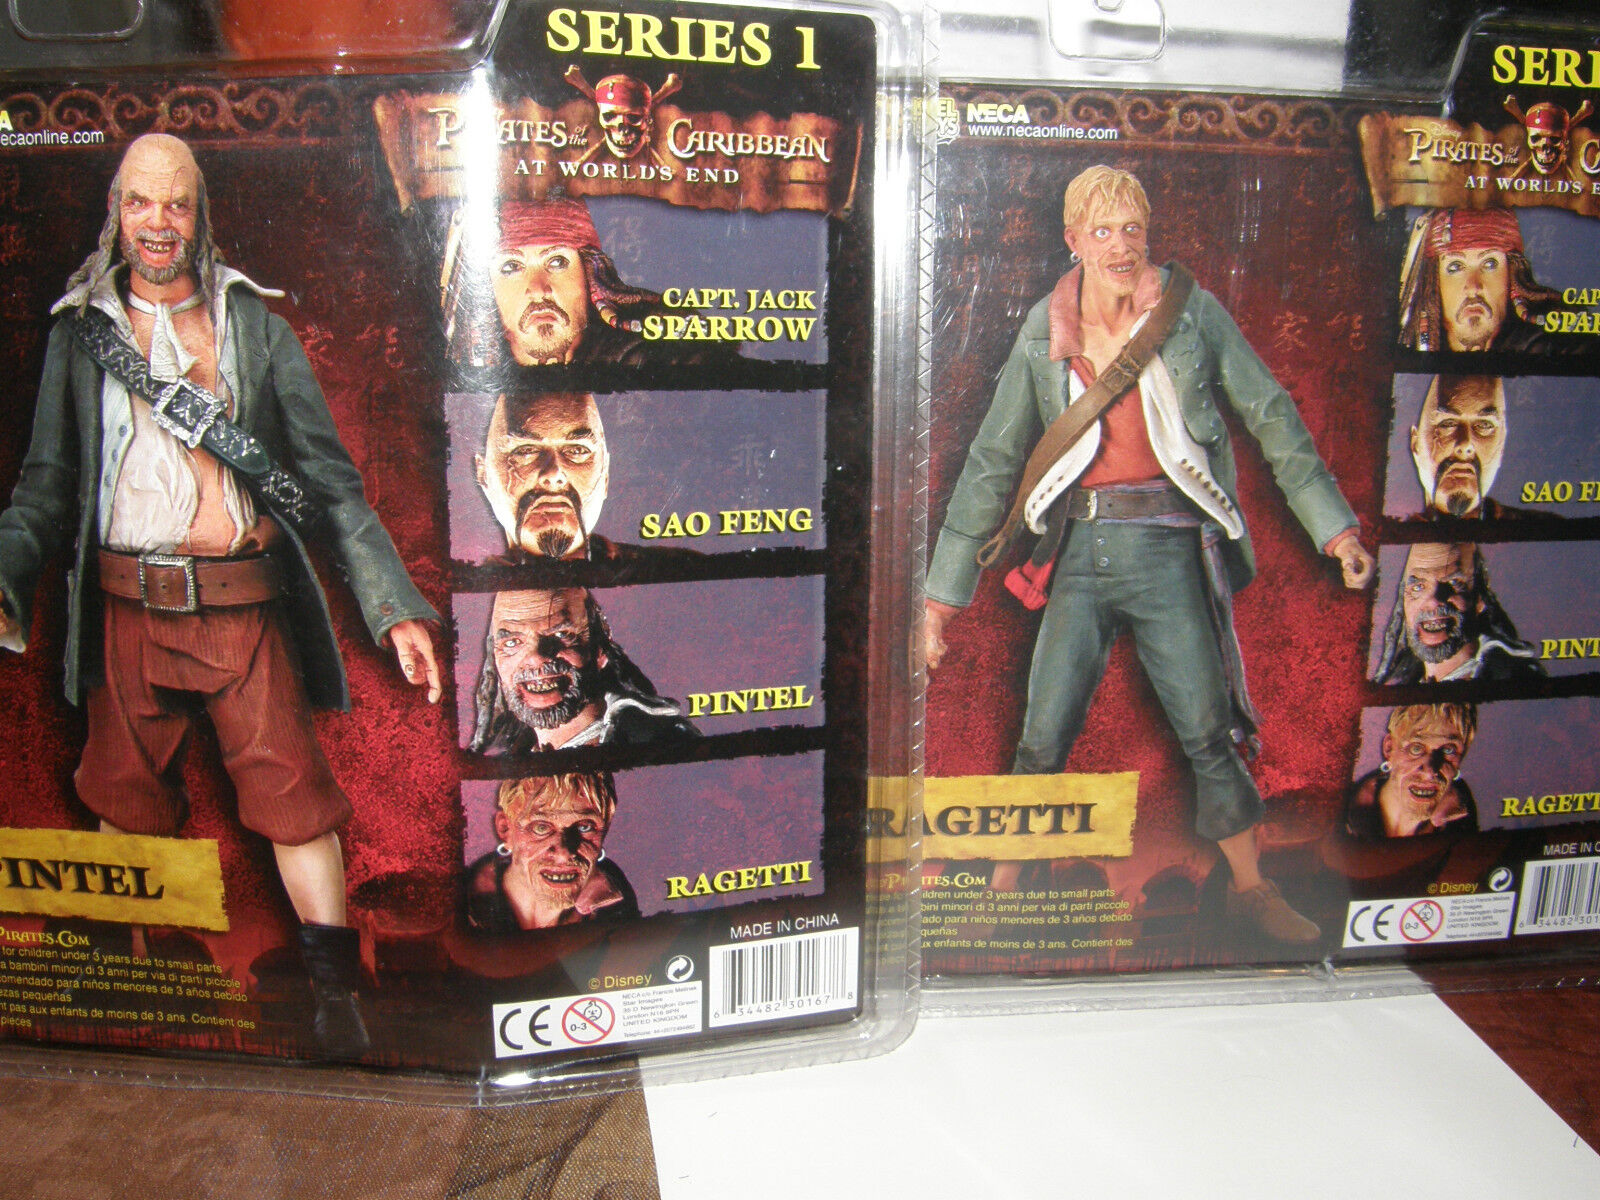 Pirates of of of the caribbean   at world end   Pintel   Ragetti  action figure's 595224